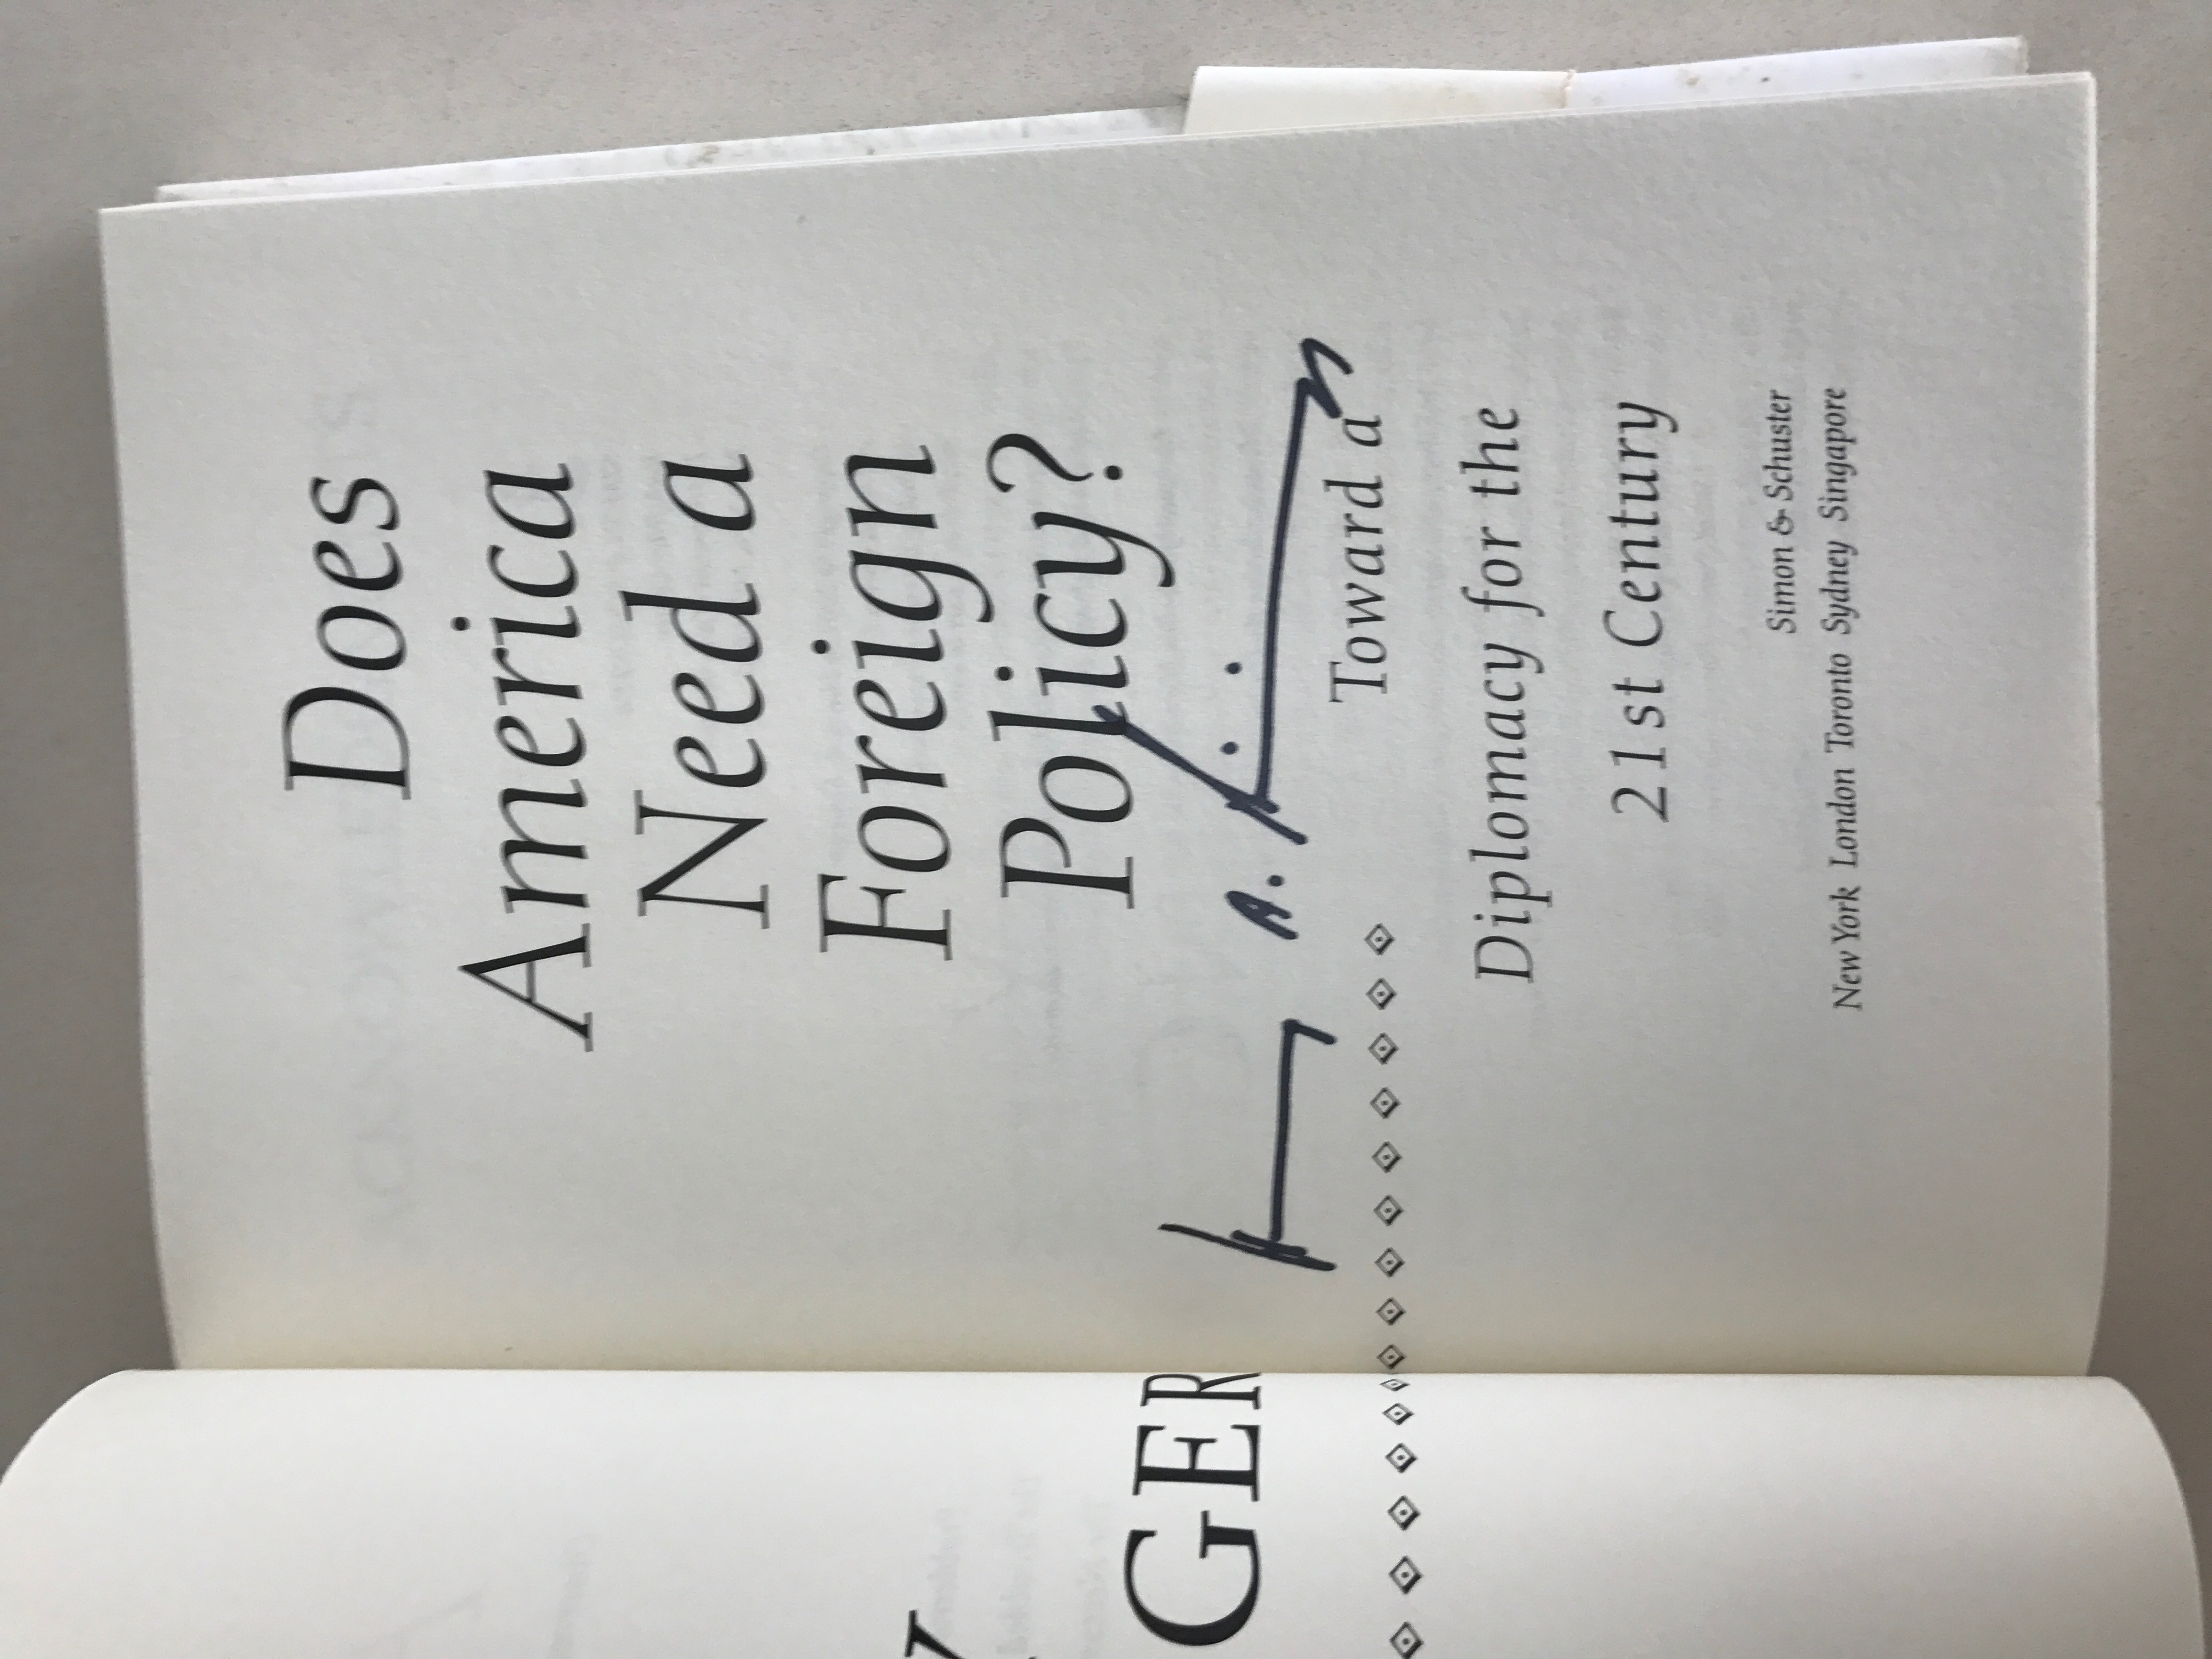 Signed by Henry Kissinger, his book